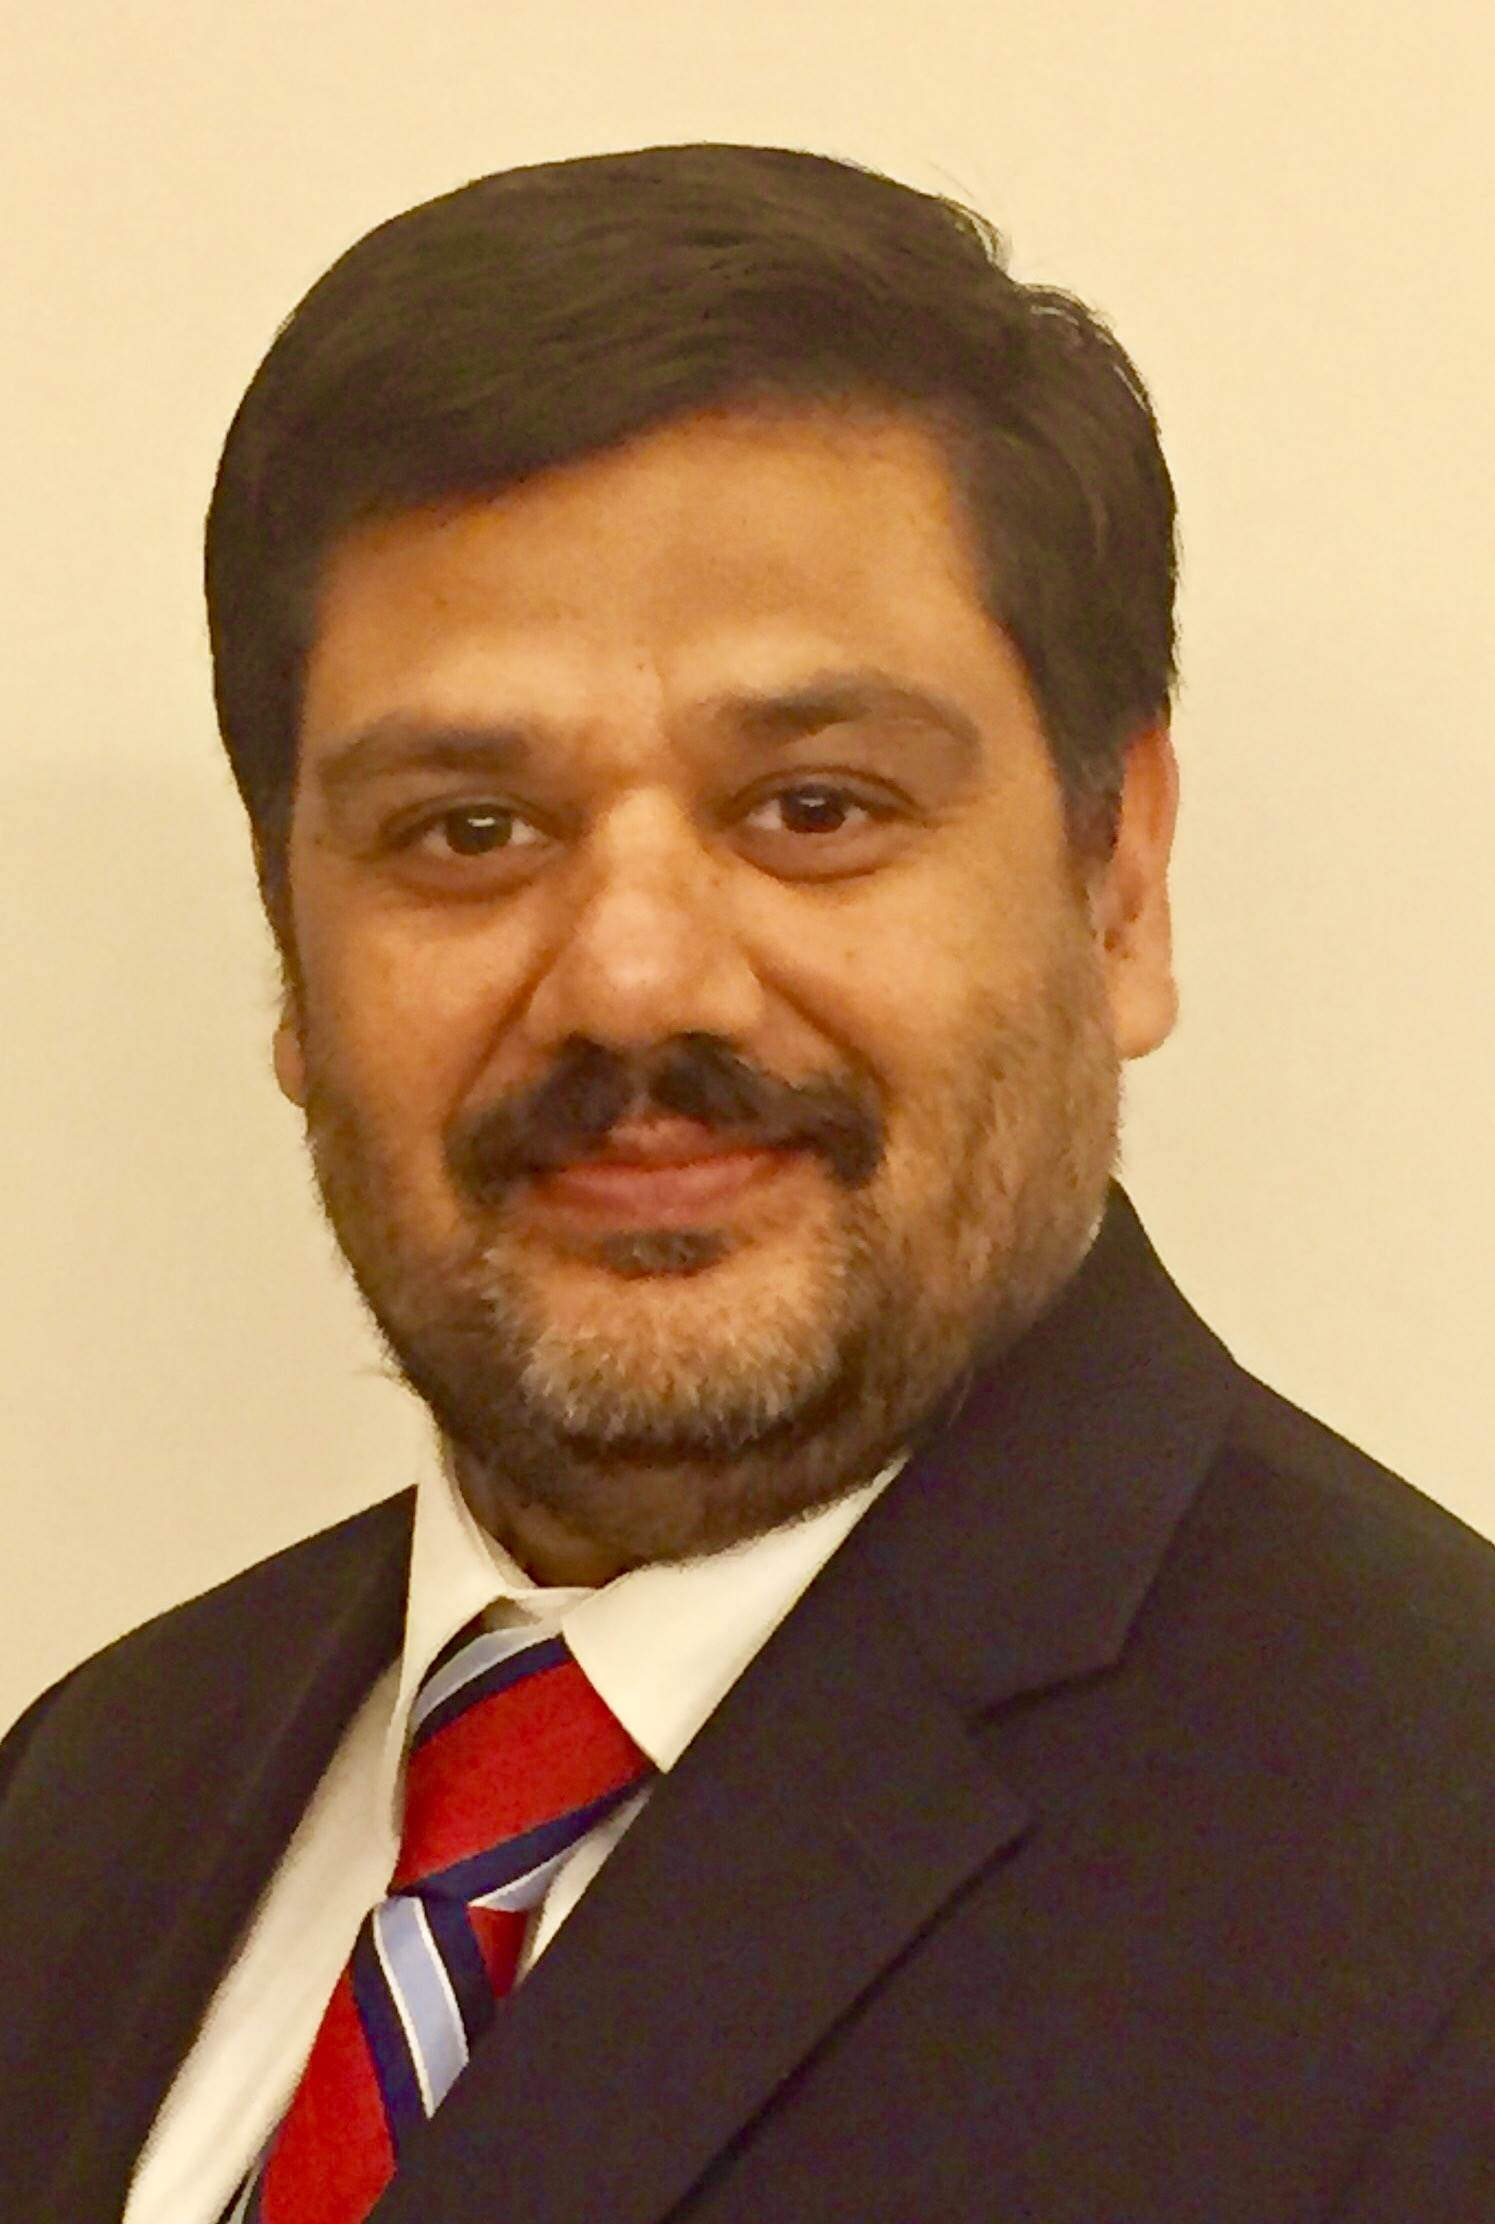 GM India appoints Sanjiv Gupta as new head